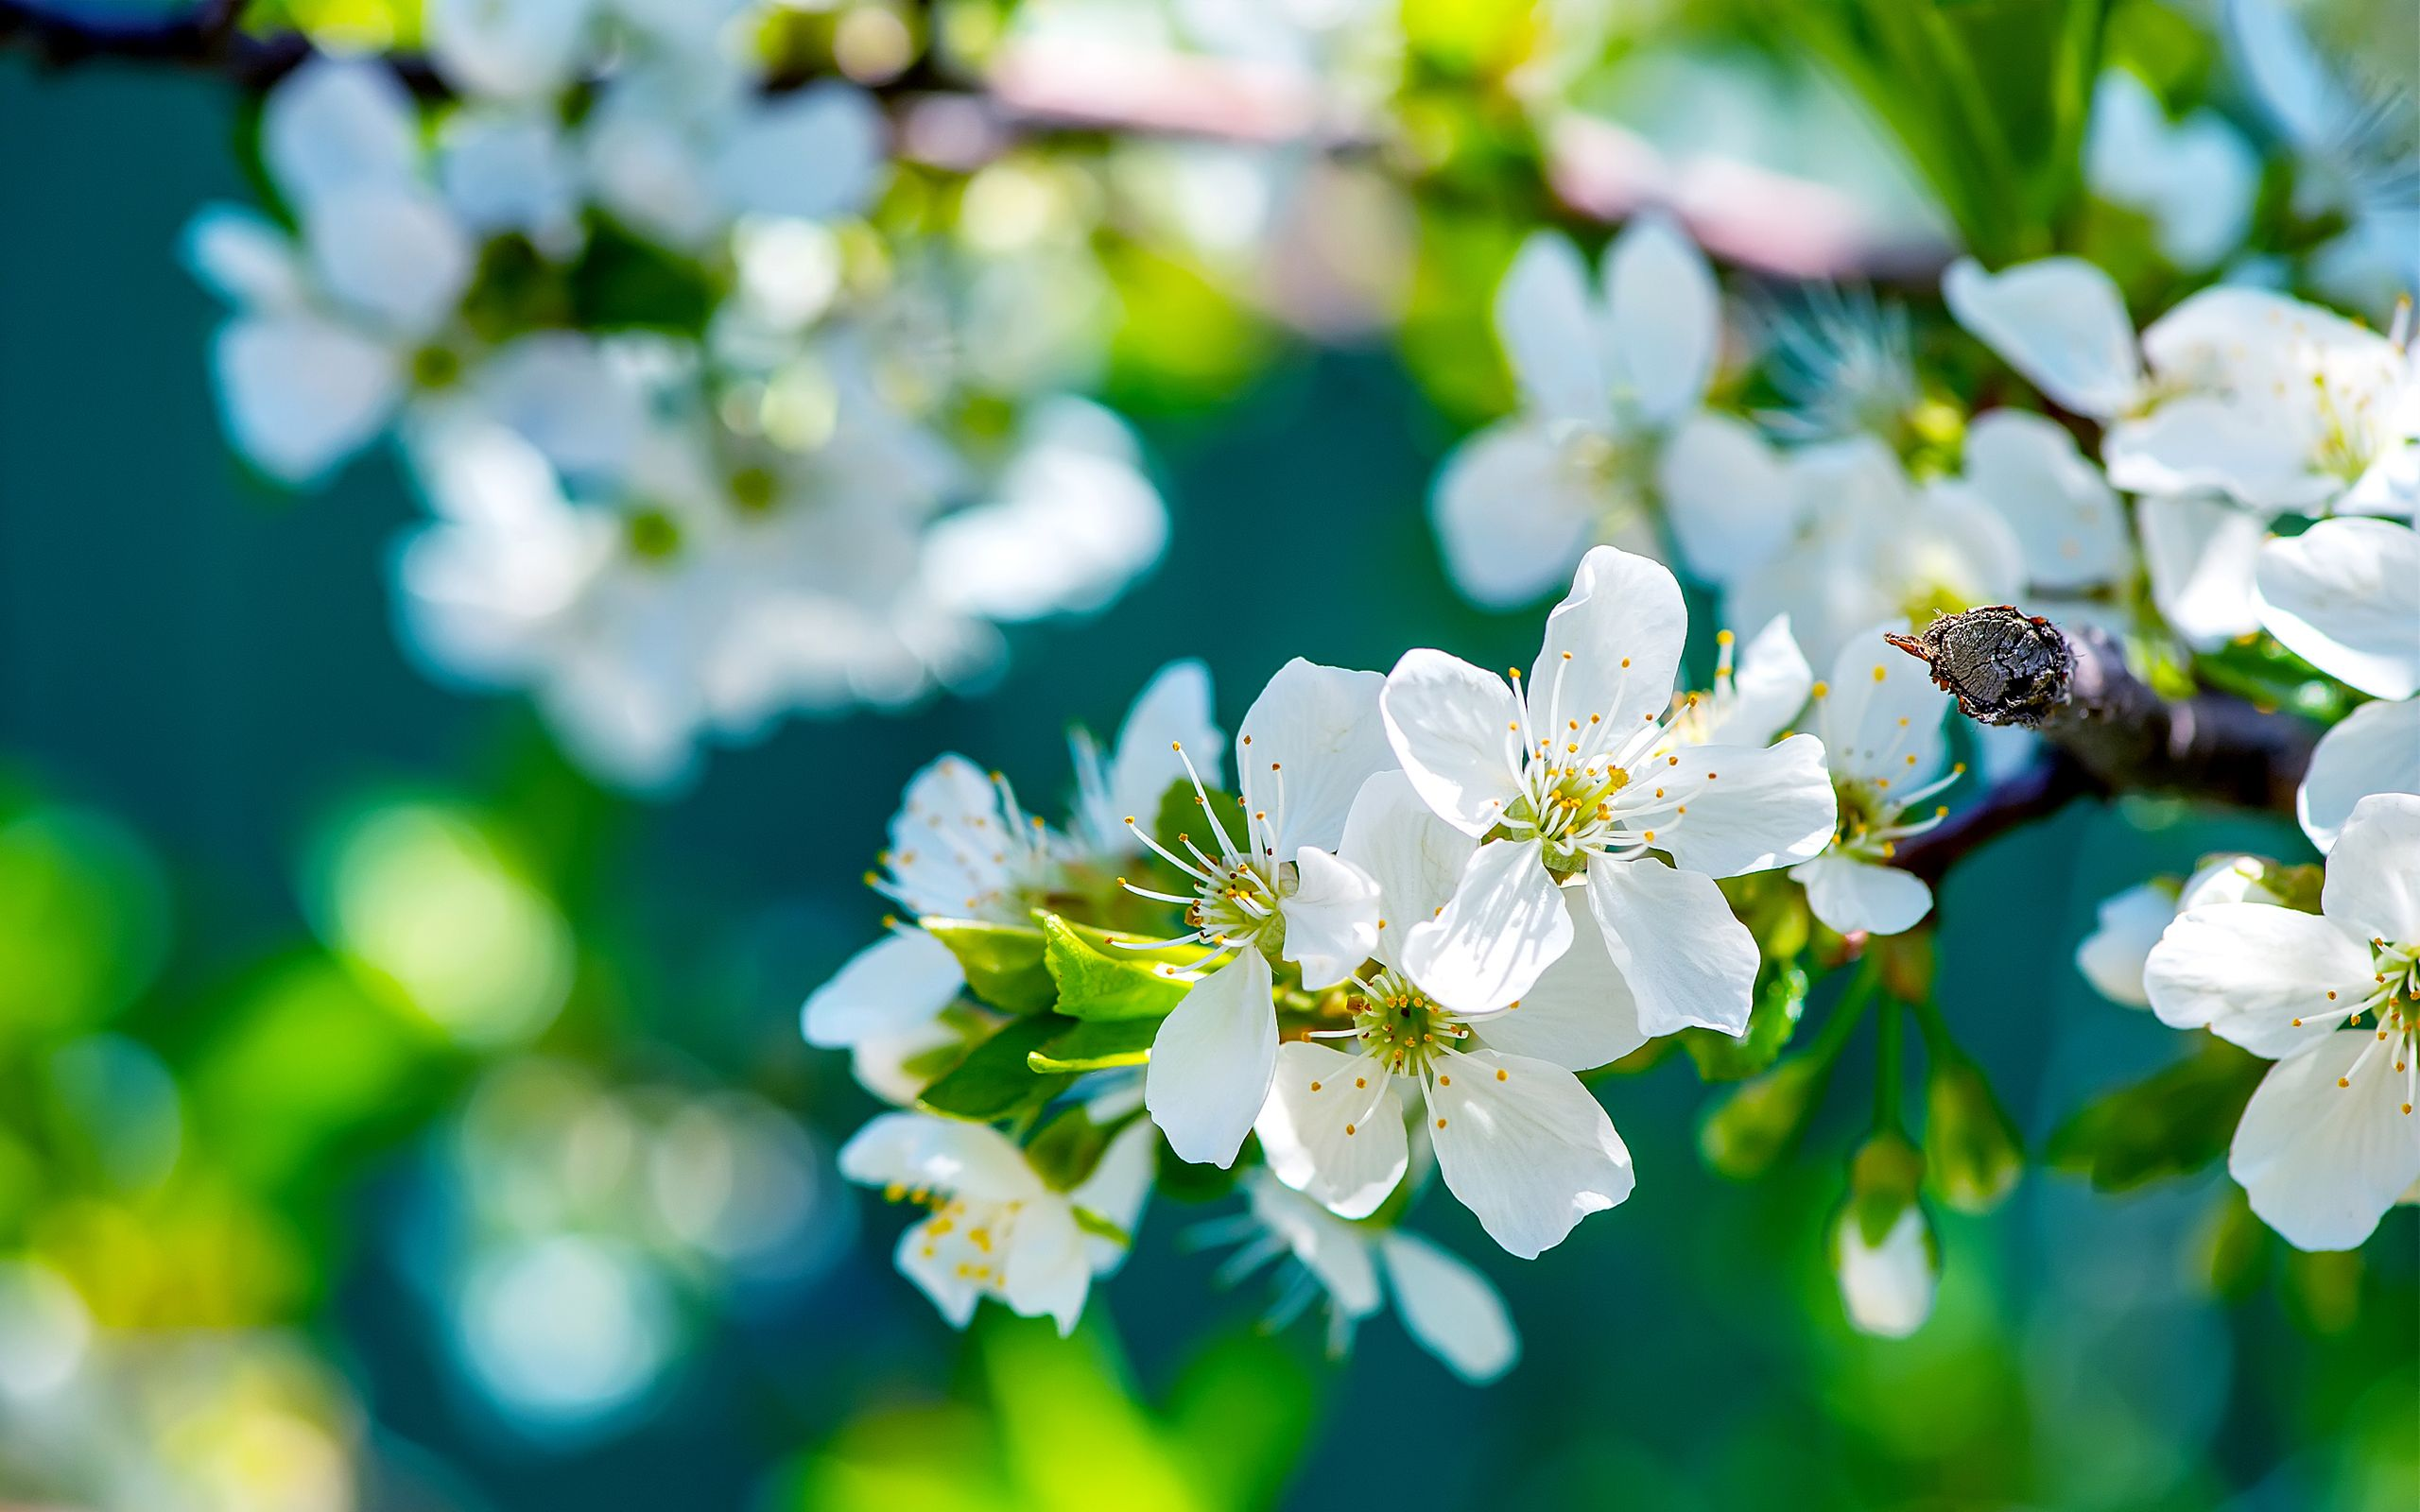 Ultra HD Wallpaper, flower 4K Apple Flowers Wallpapers